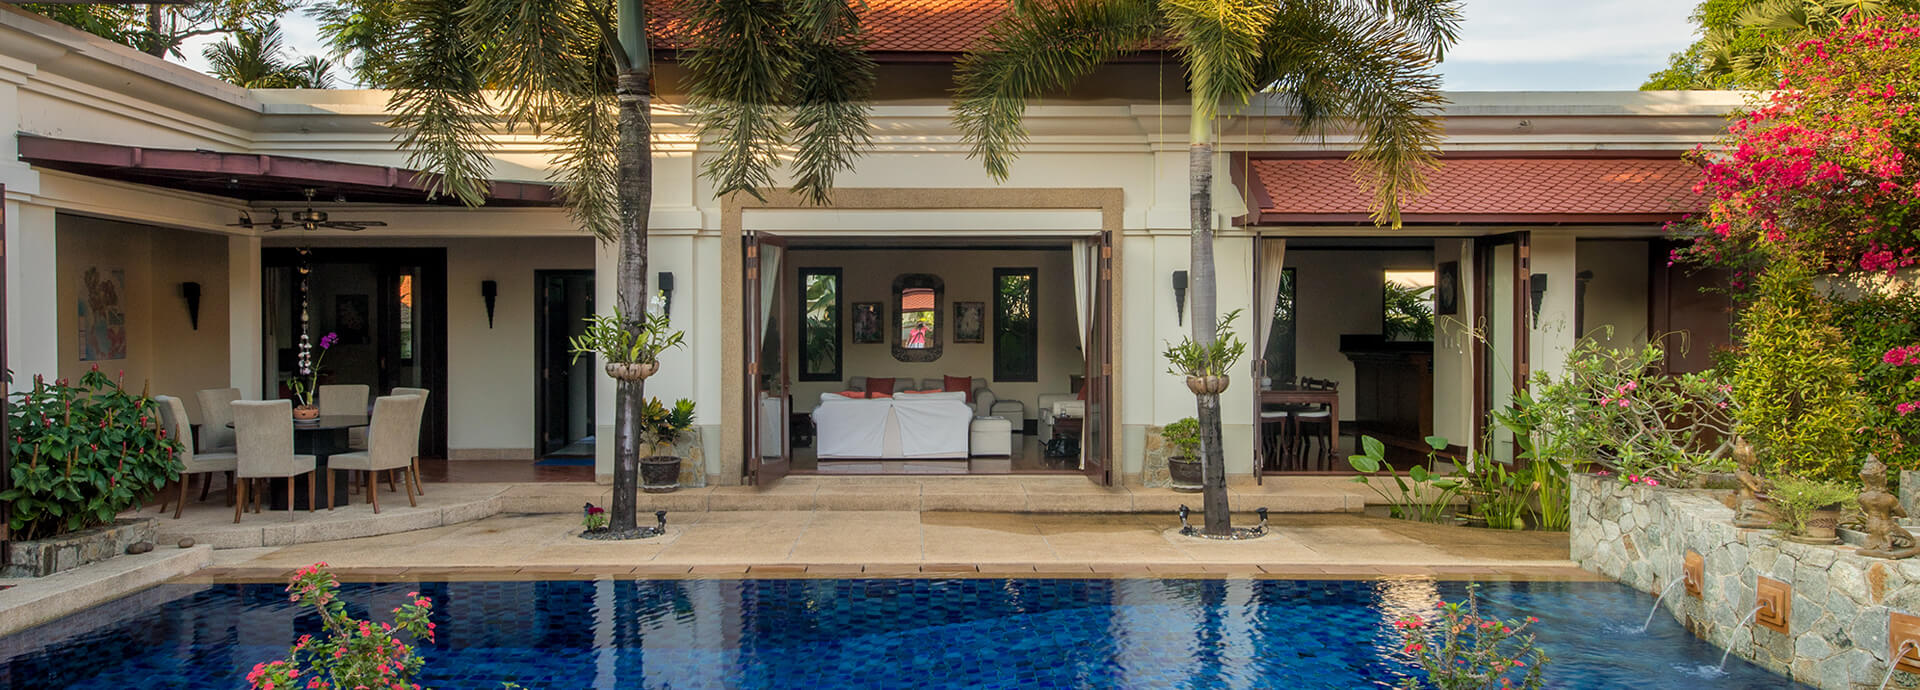 Sai Taan 4 Bed Luxury Villa - 1596